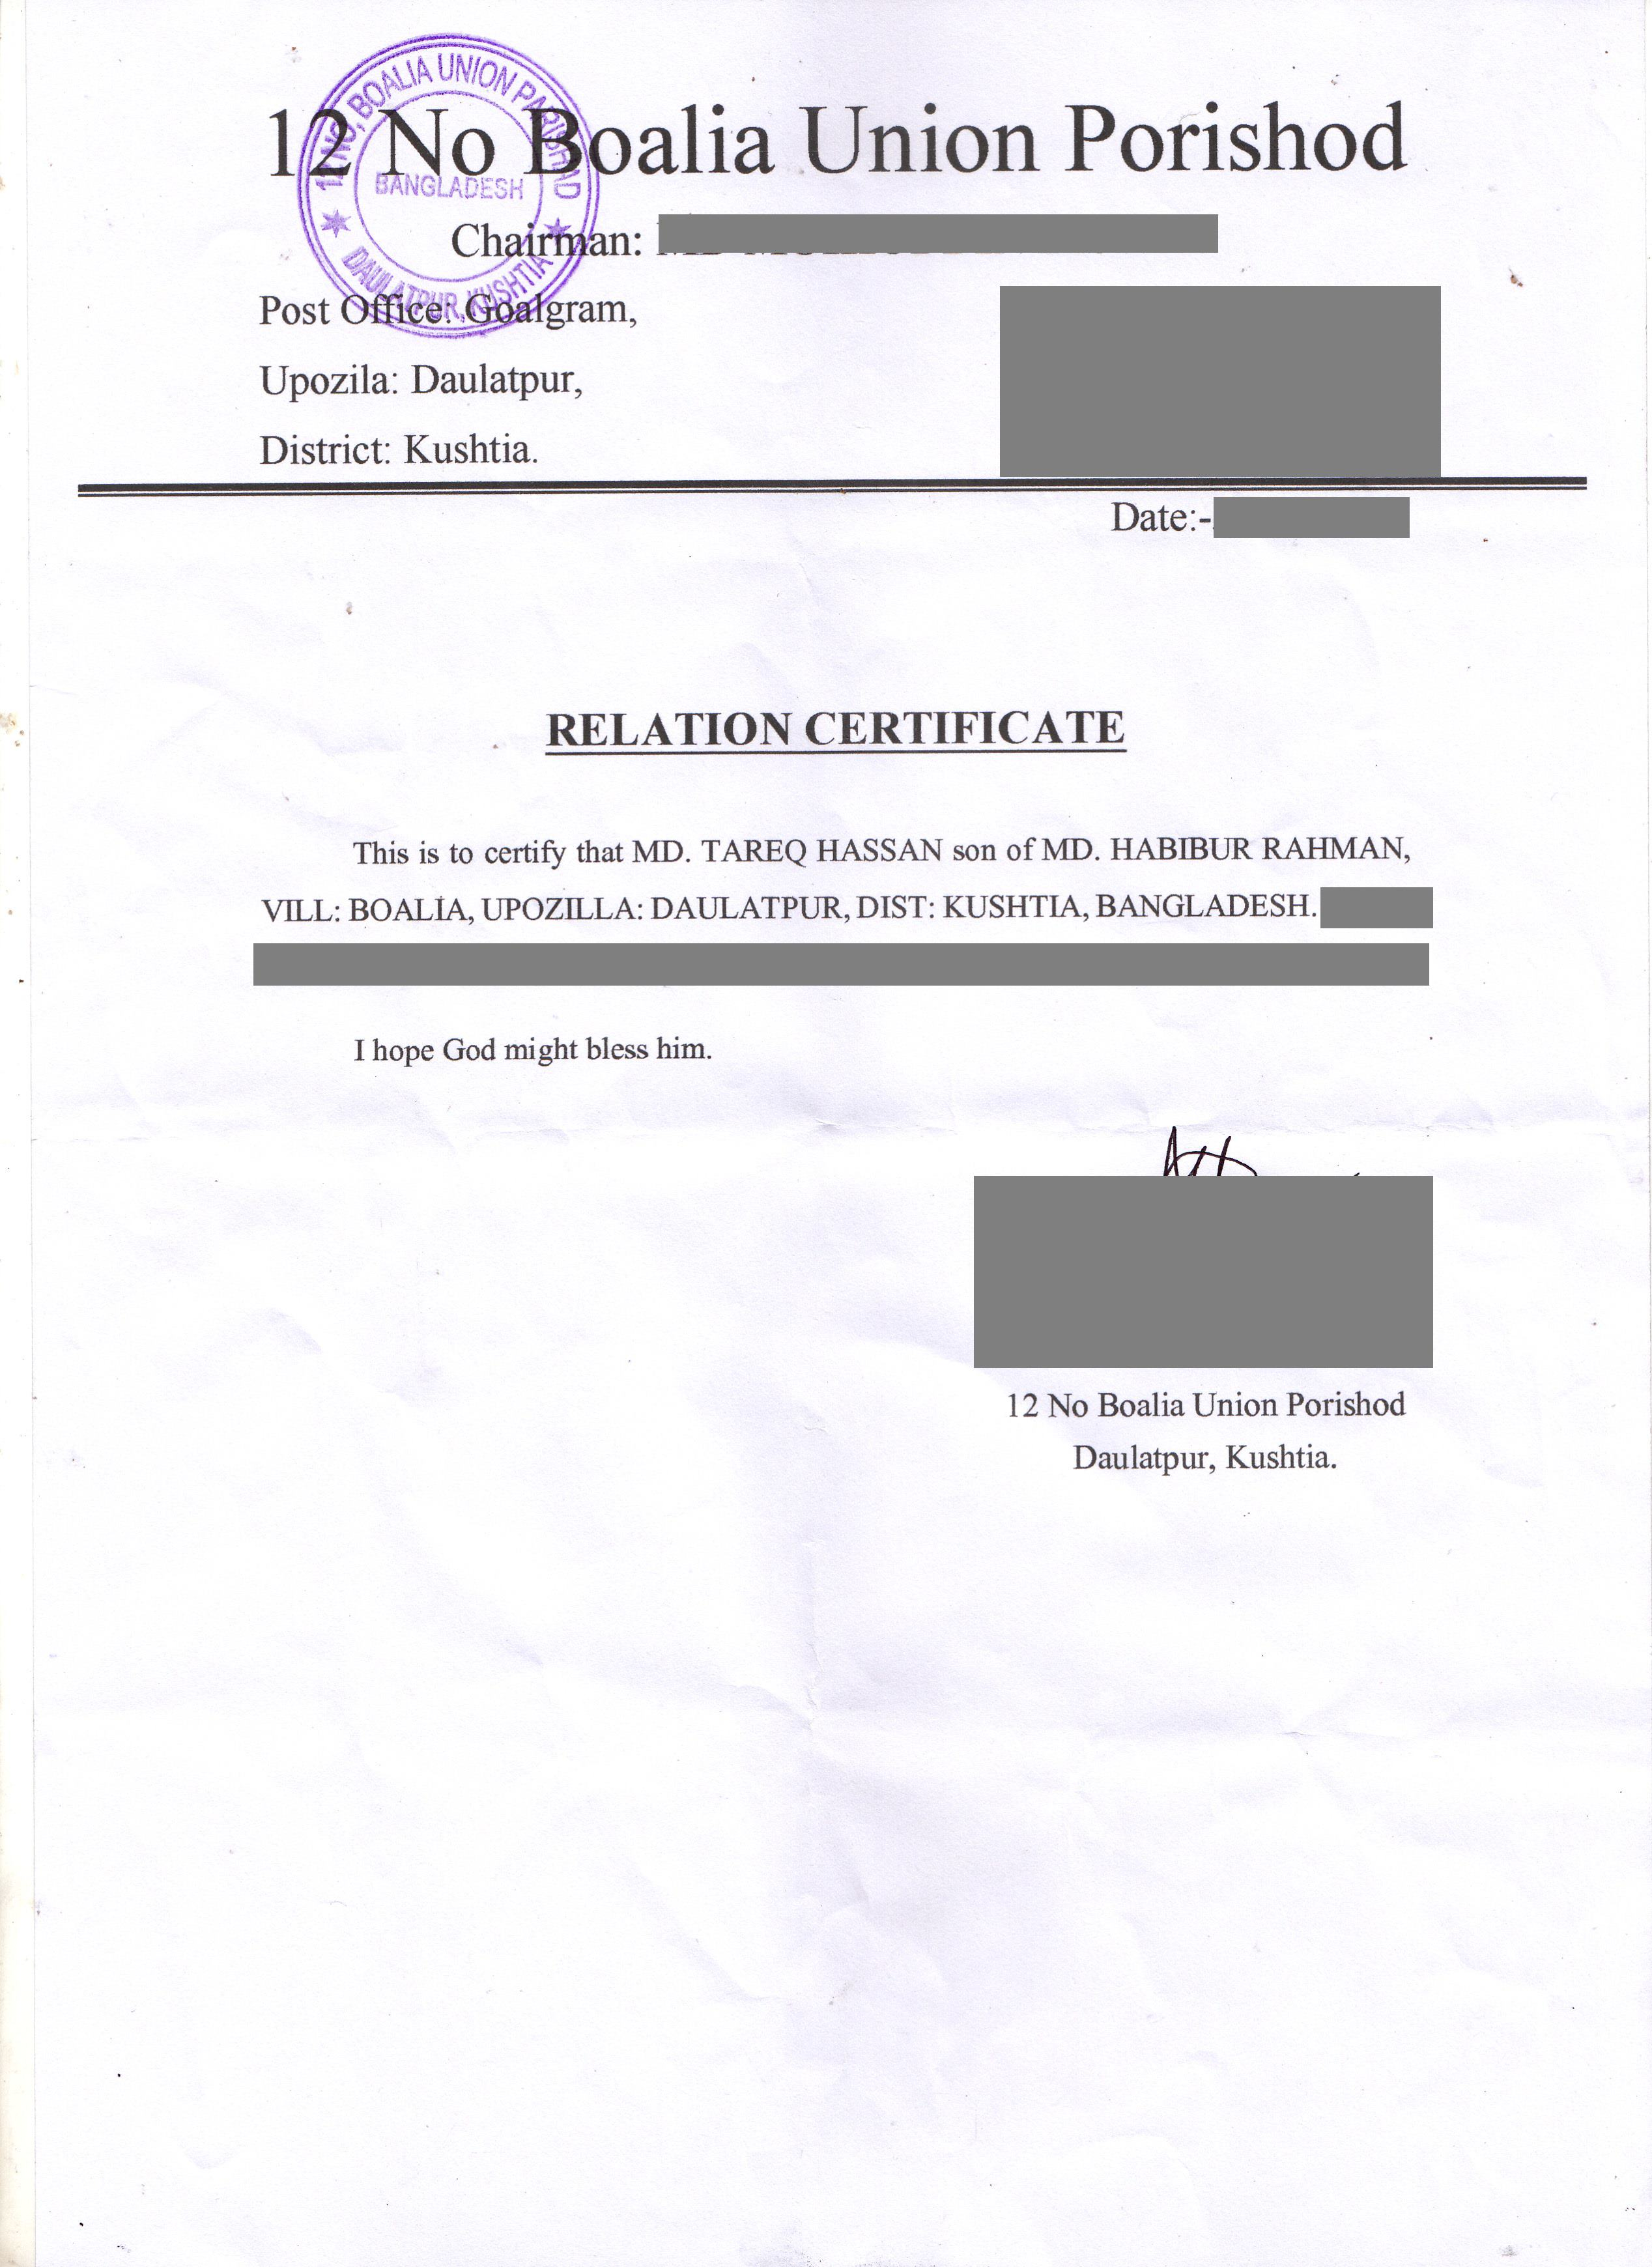 Dependent relationship certificate (関係証明書)